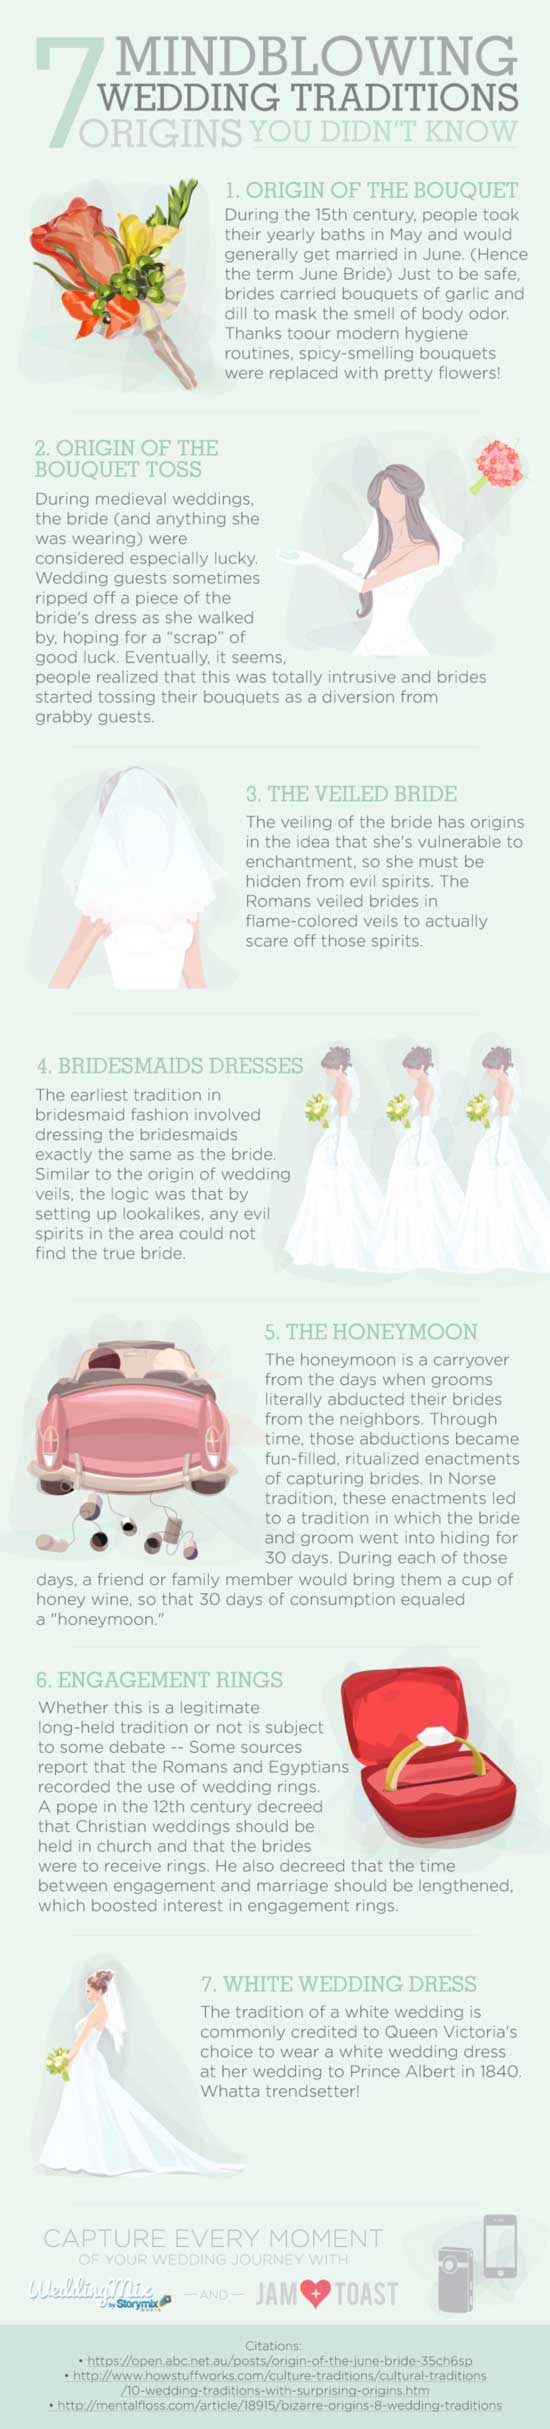 wedding tradition origins infographic